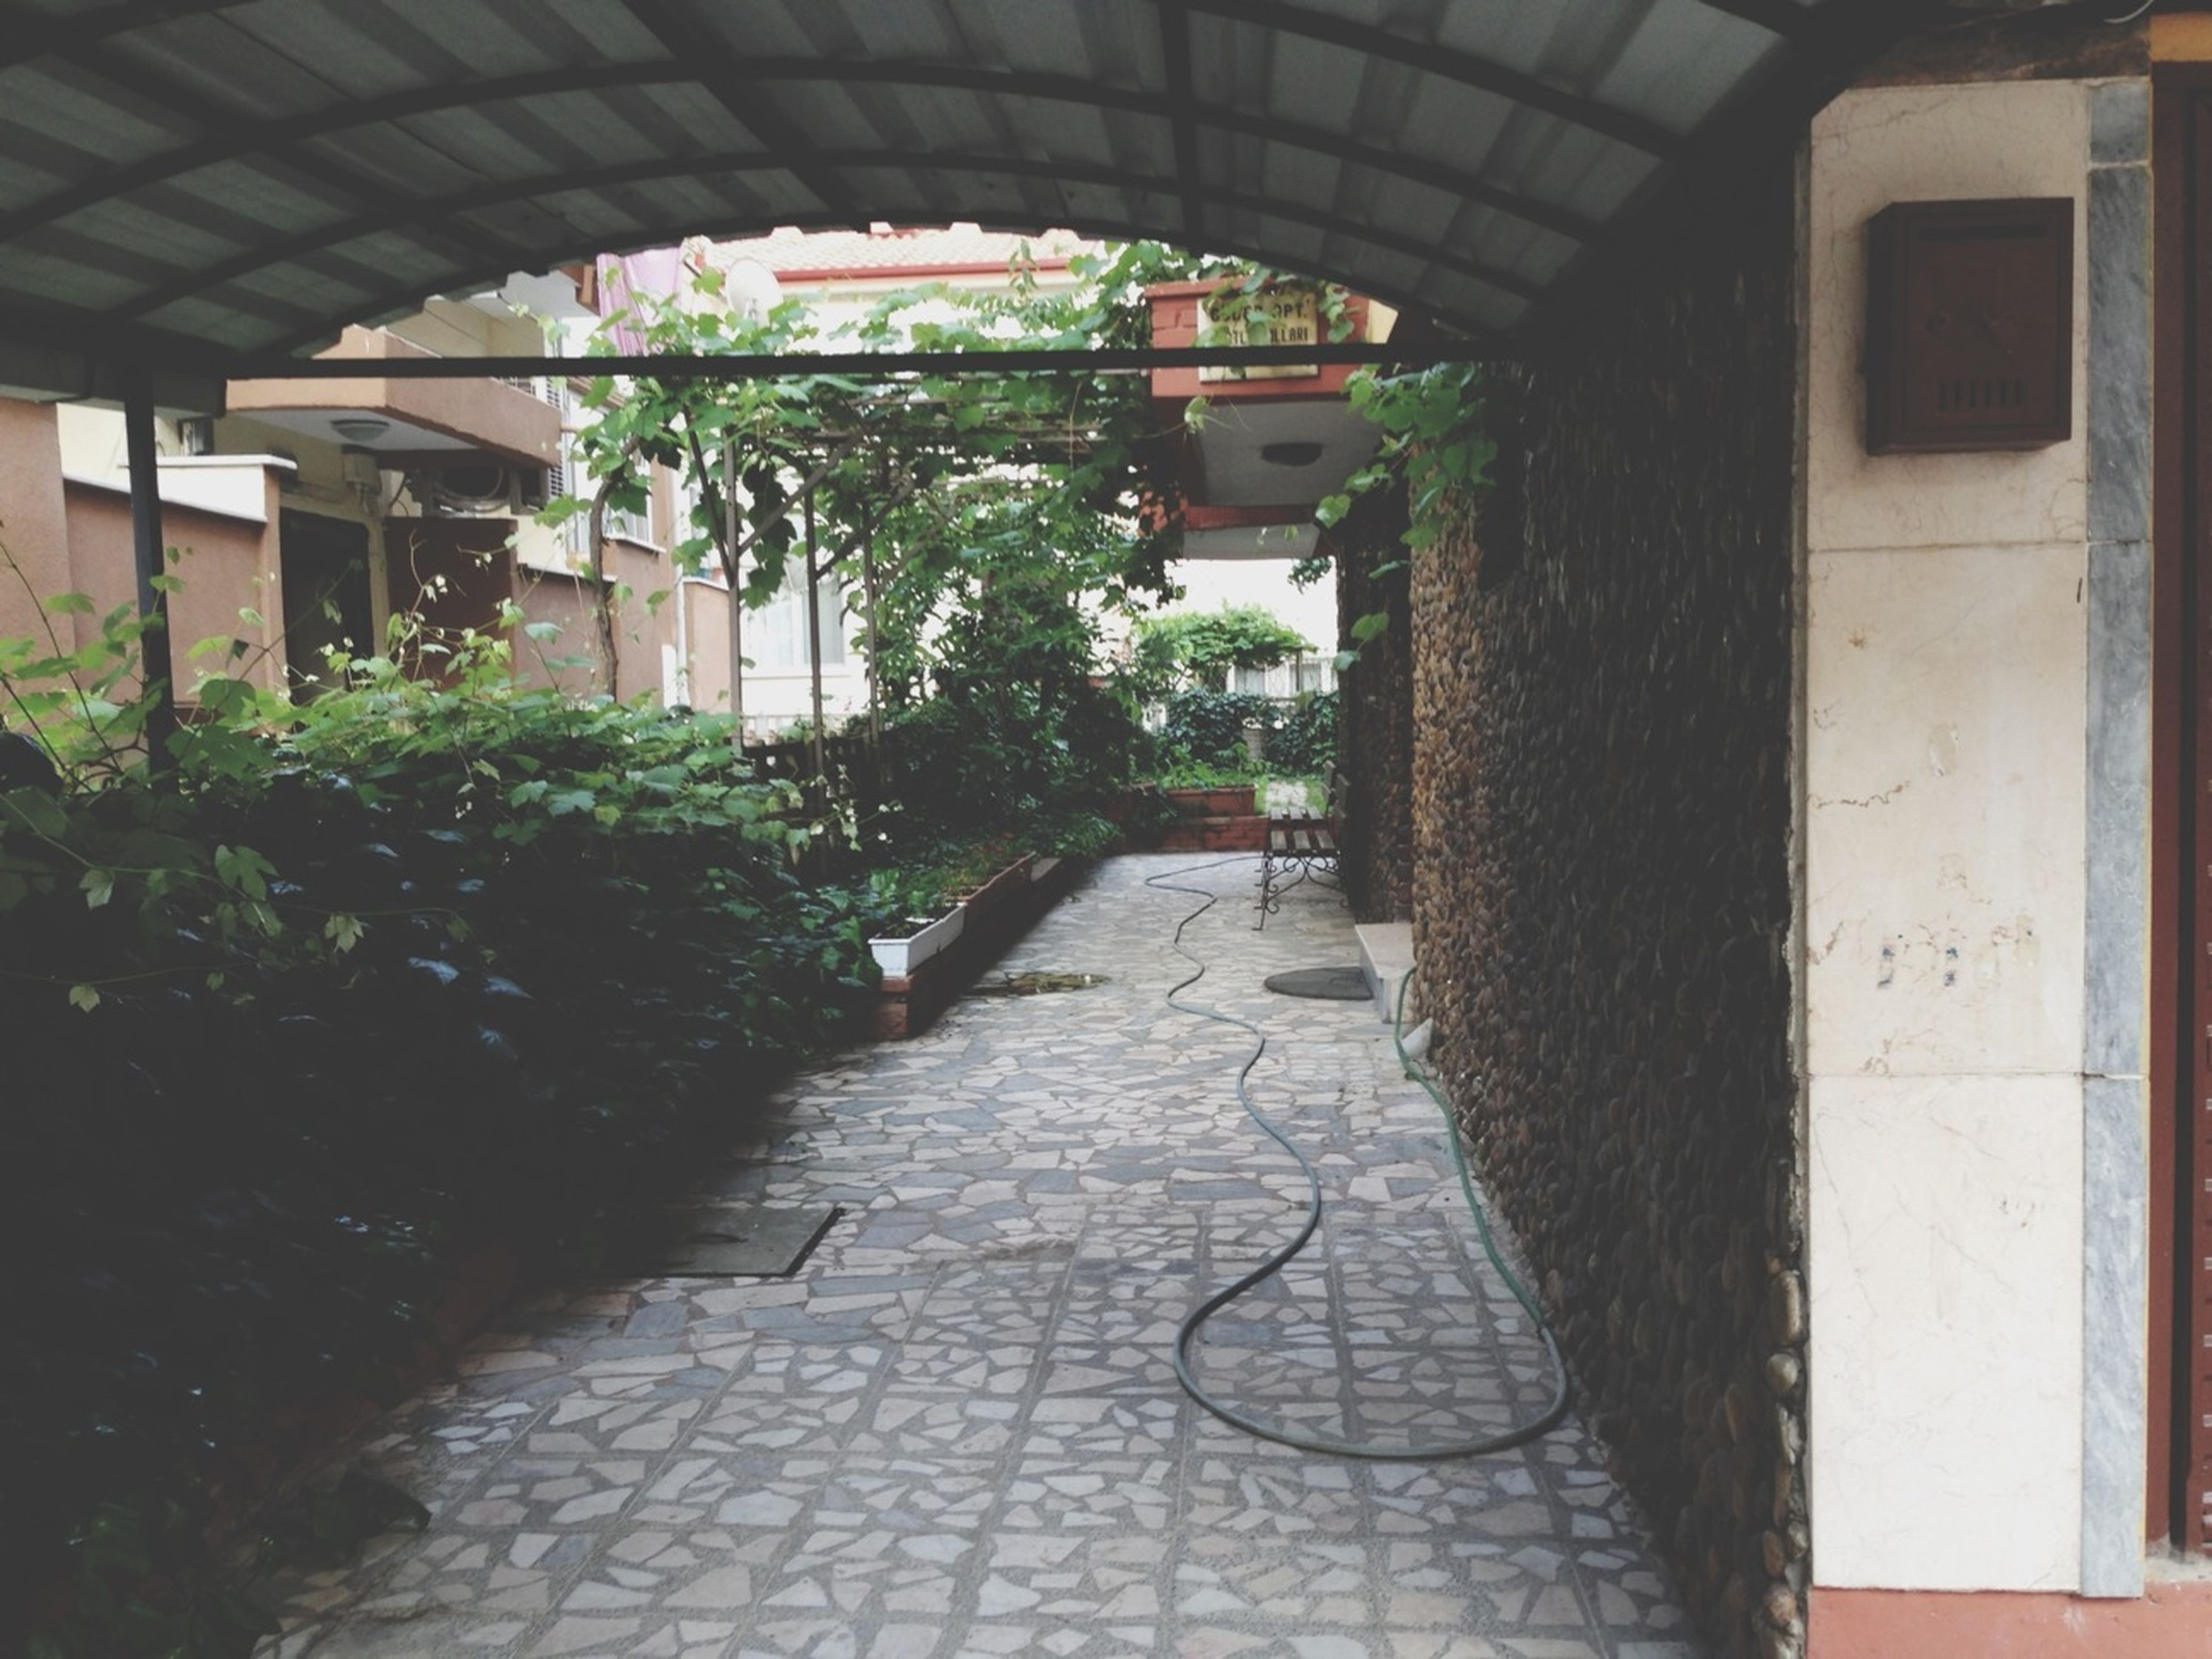 architecture, built structure, the way forward, building exterior, plant, cobblestone, walkway, footpath, narrow, street, pathway, growth, diminishing perspective, paving stone, tree, alley, building, house, residential building, empty